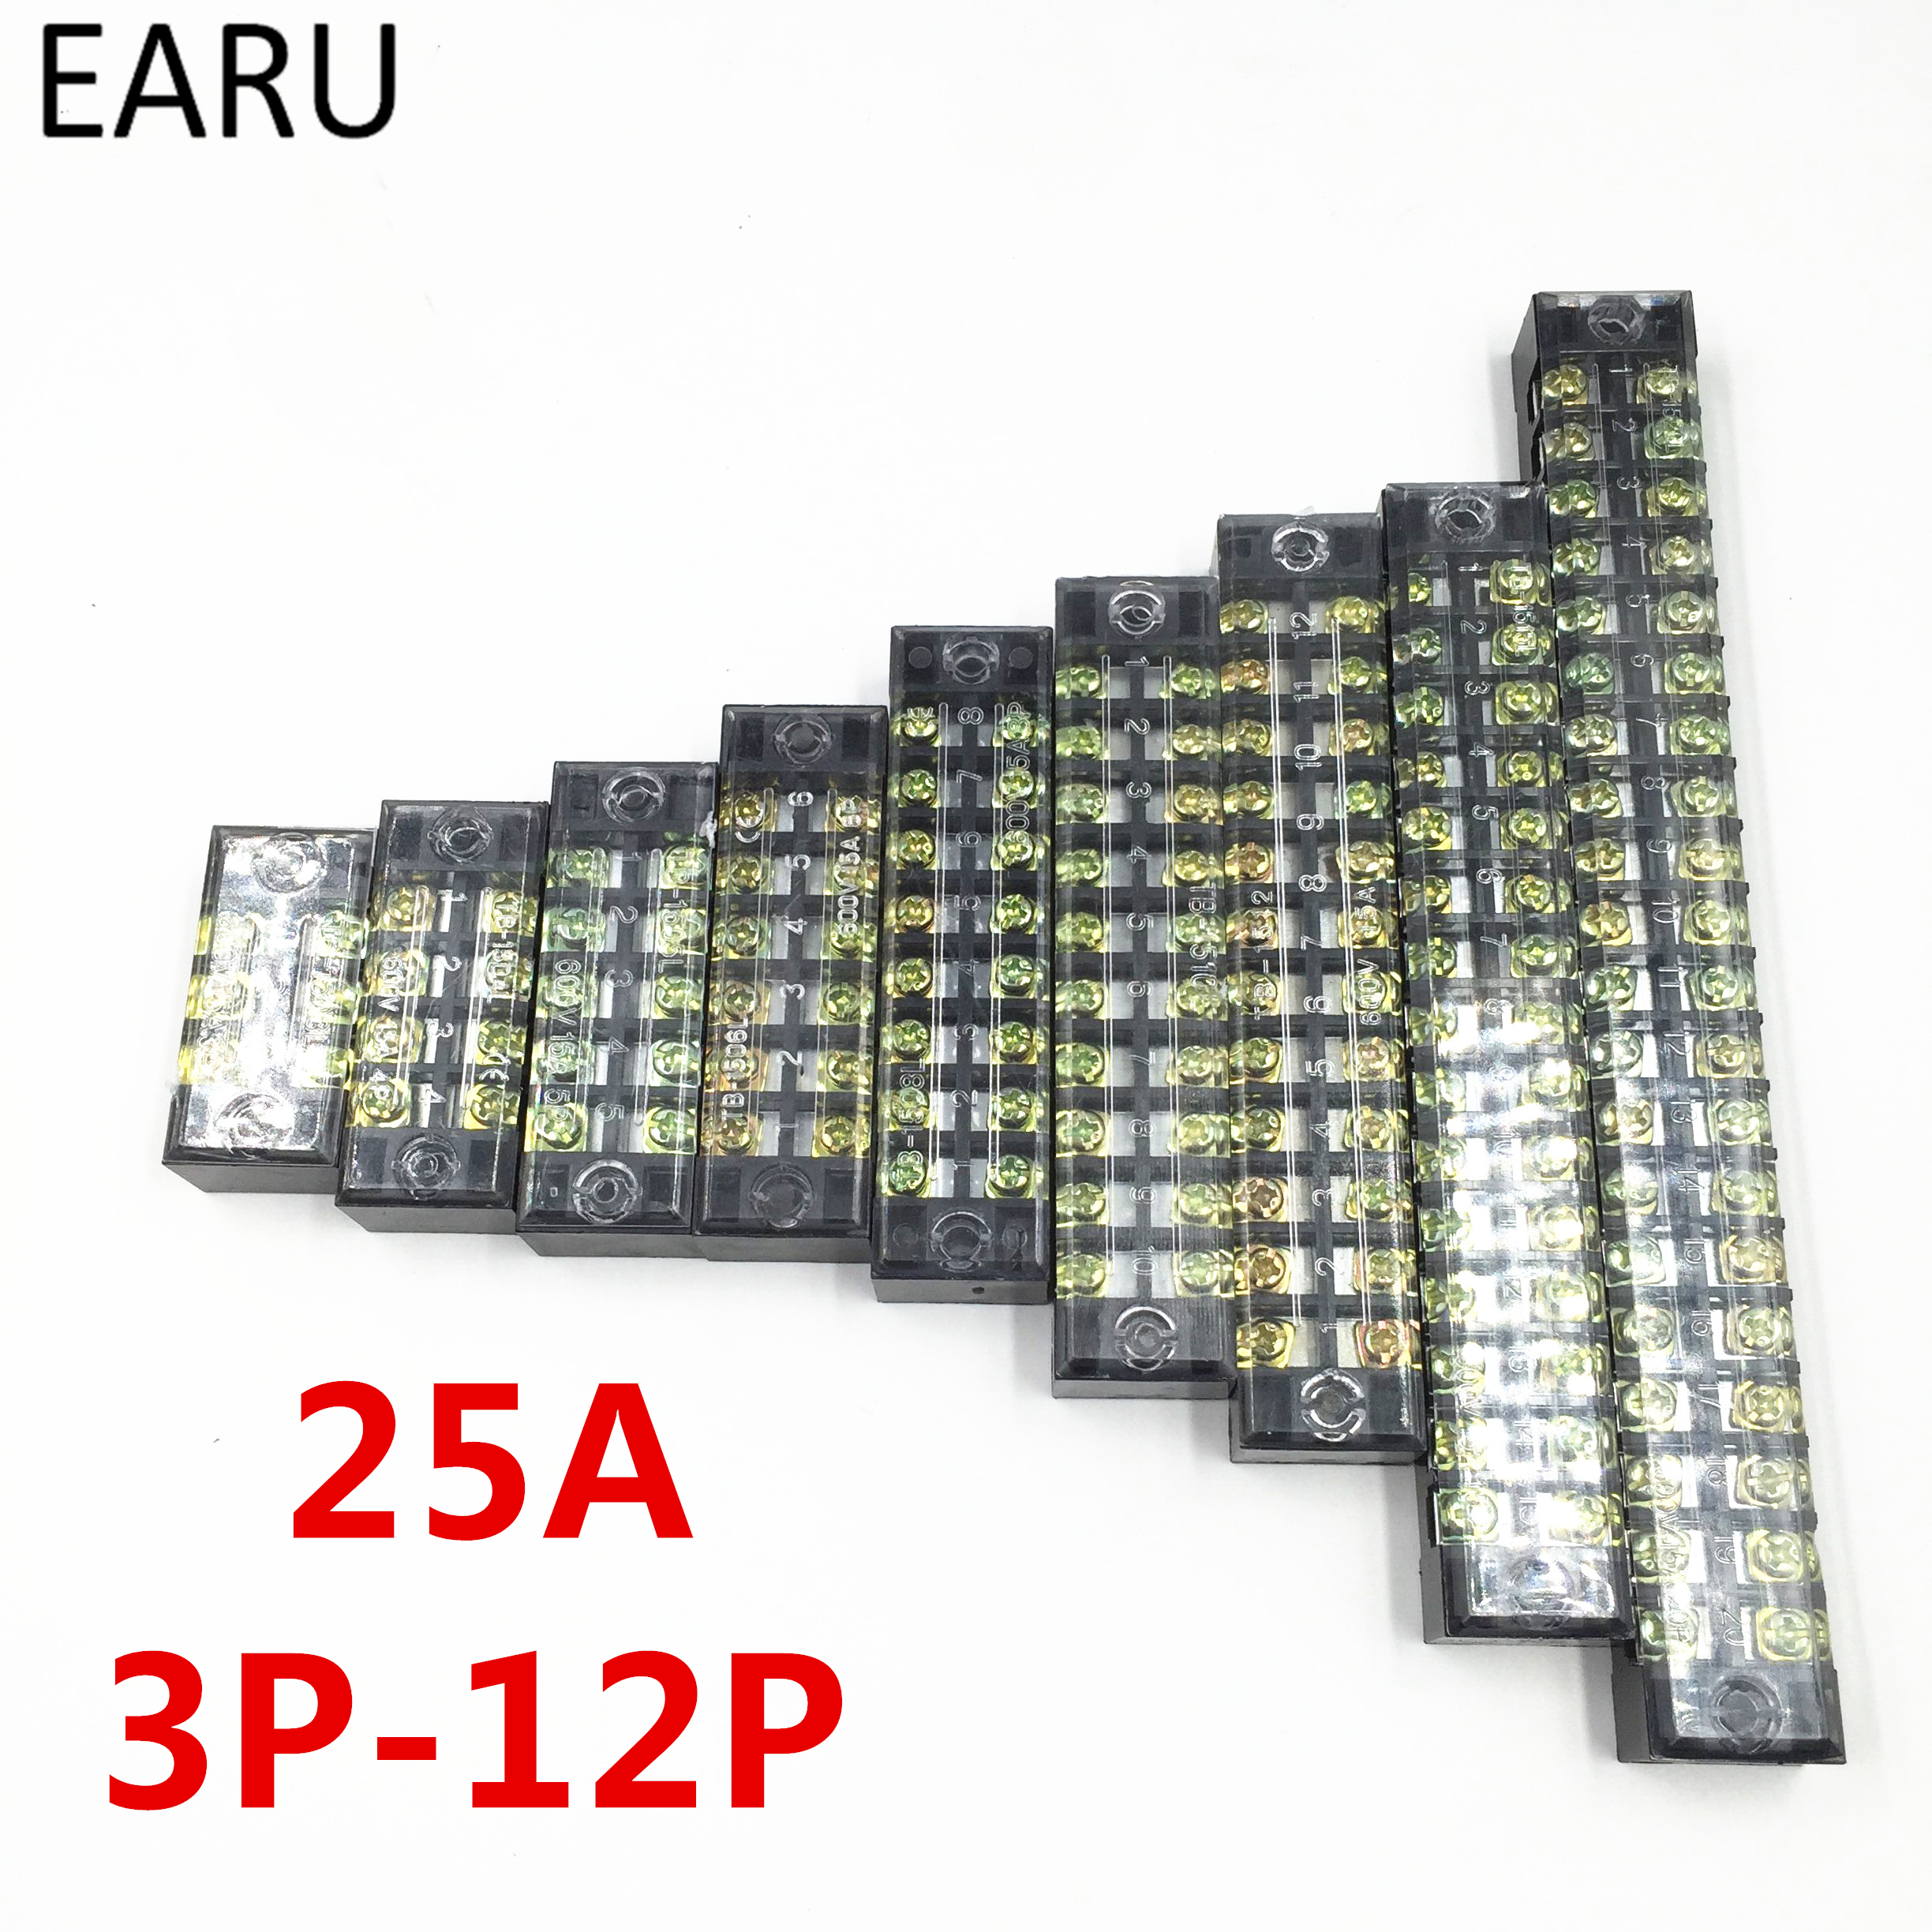 1pc 25A 600V Dual Row Barrier Screw Terminal Block Wire Connector TB Series 3 4 5 6 8 10 12 Positions Ways Factory Wholesale 5 pcs 600v 45a 4 positions 4p dual rows covered barrier screw terminal block